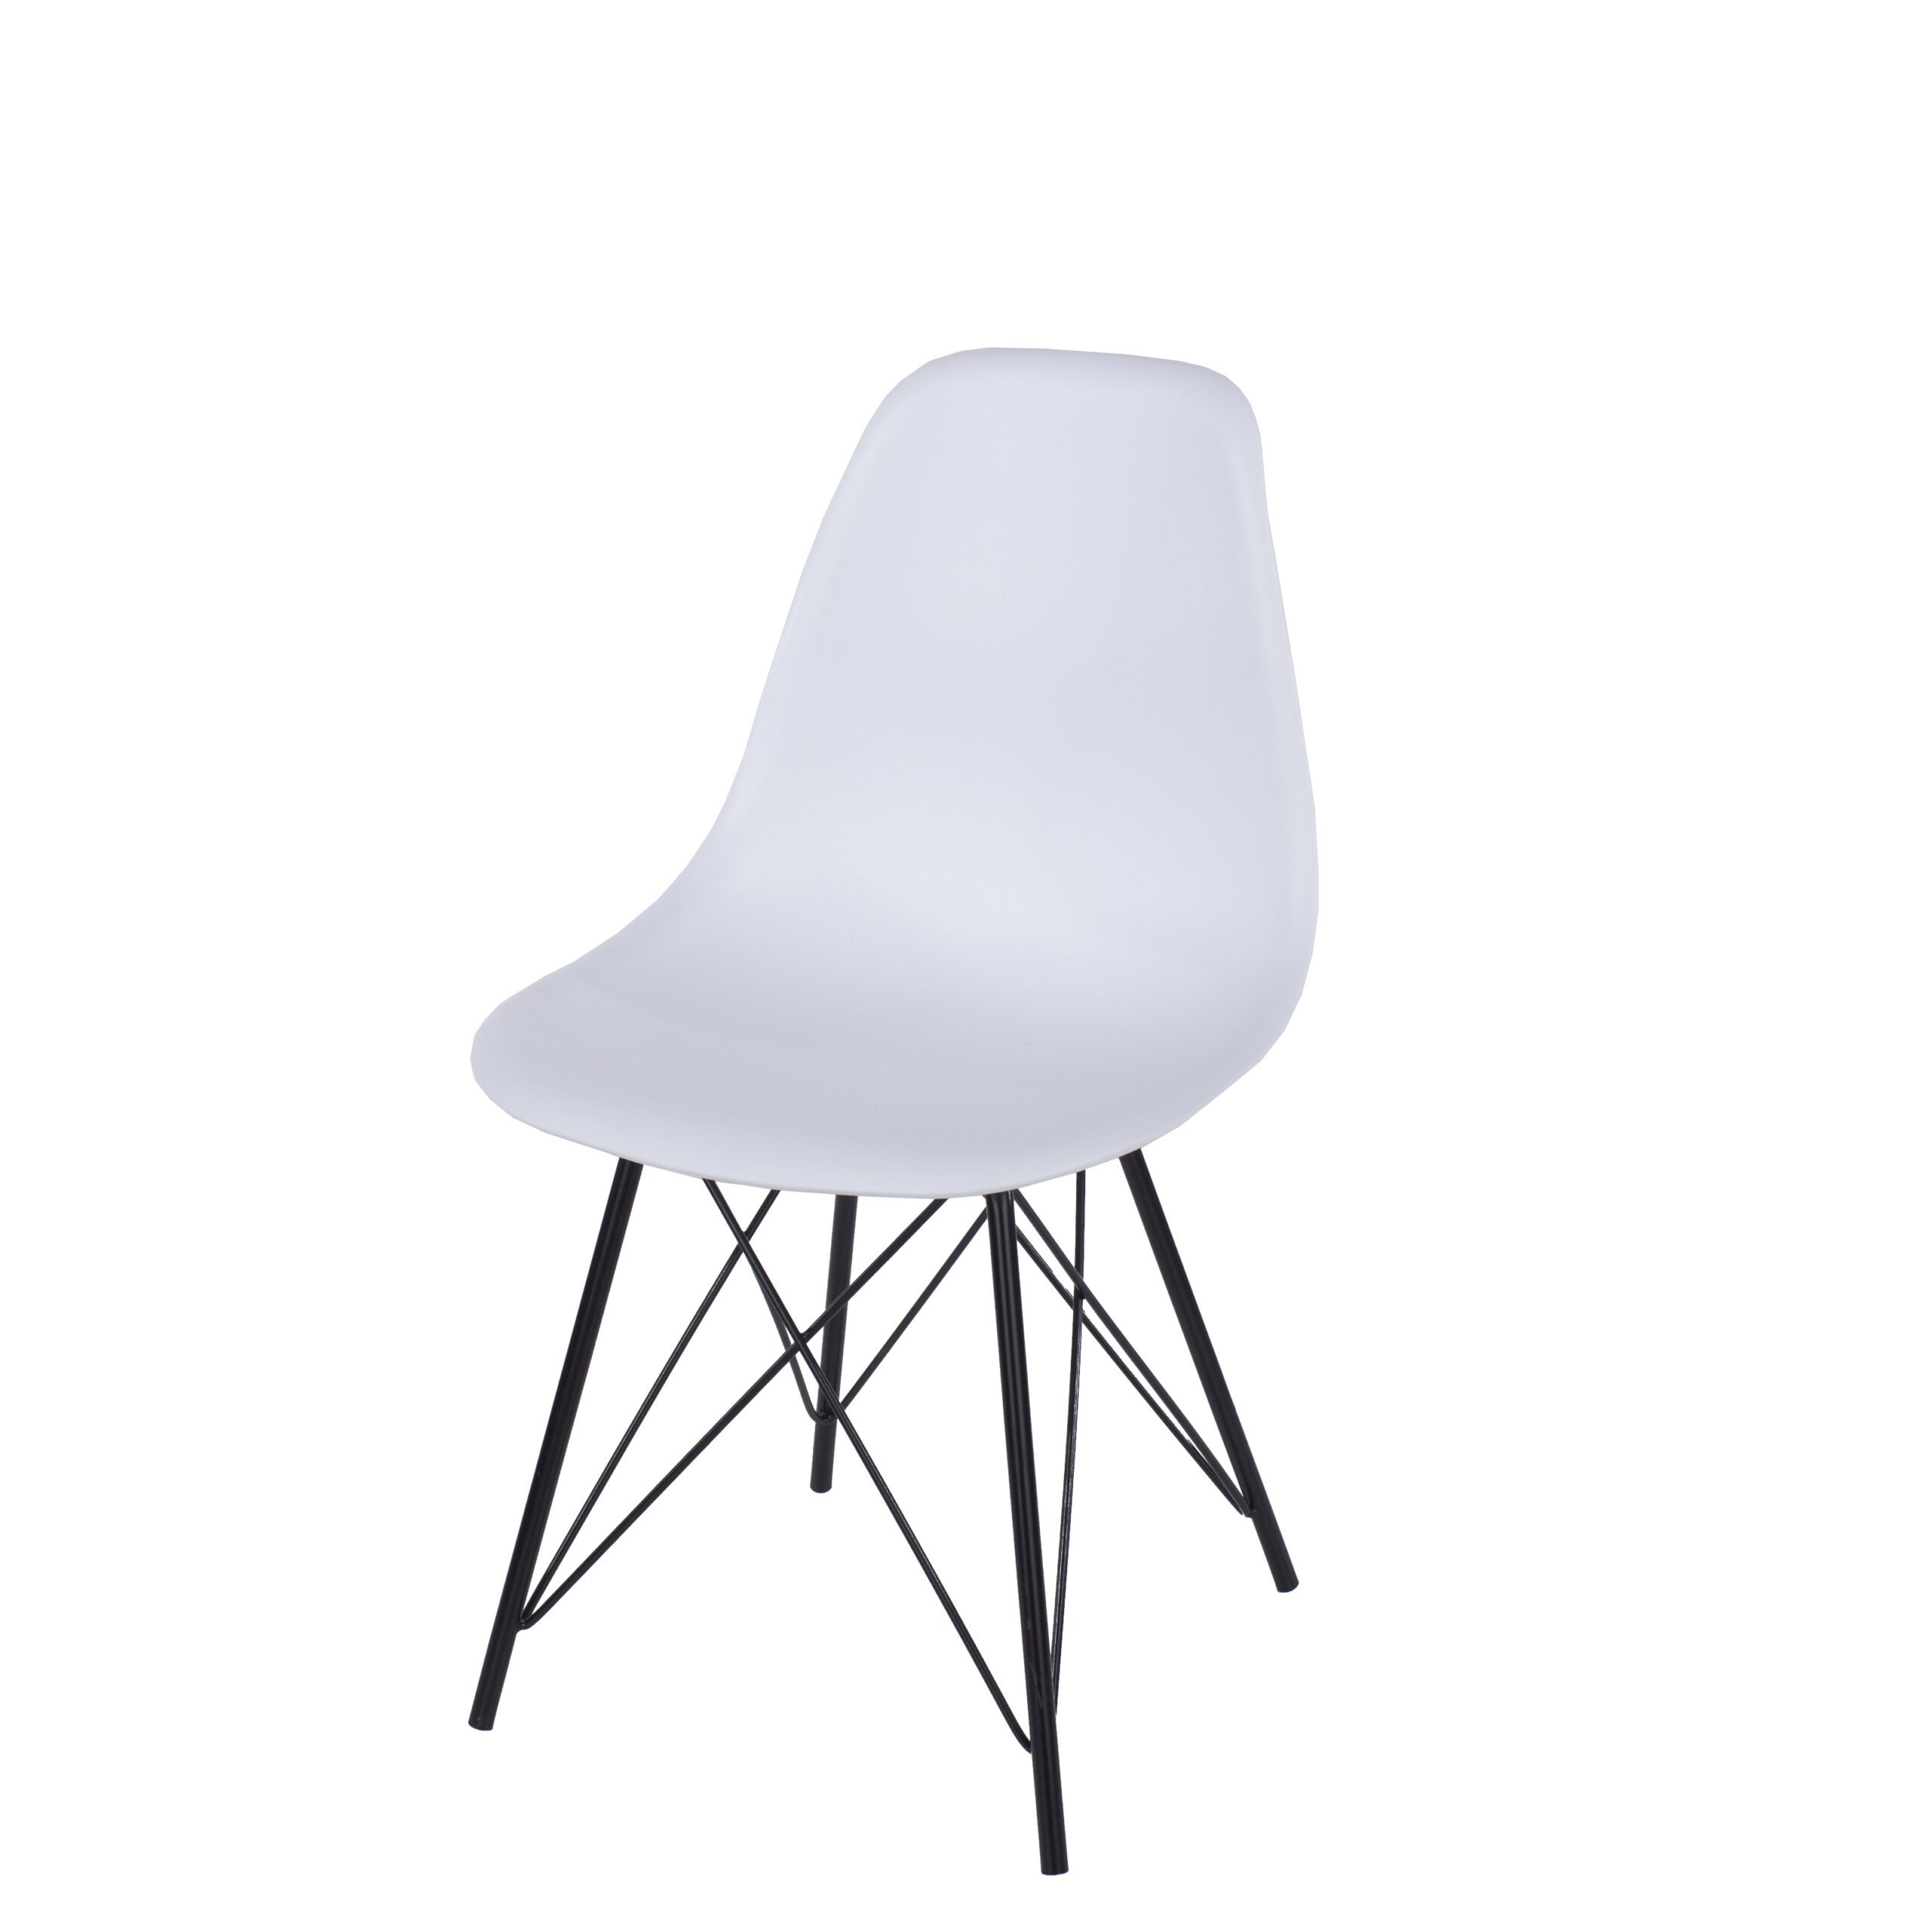 Penny white plastic chairs with black metal legs (pair)